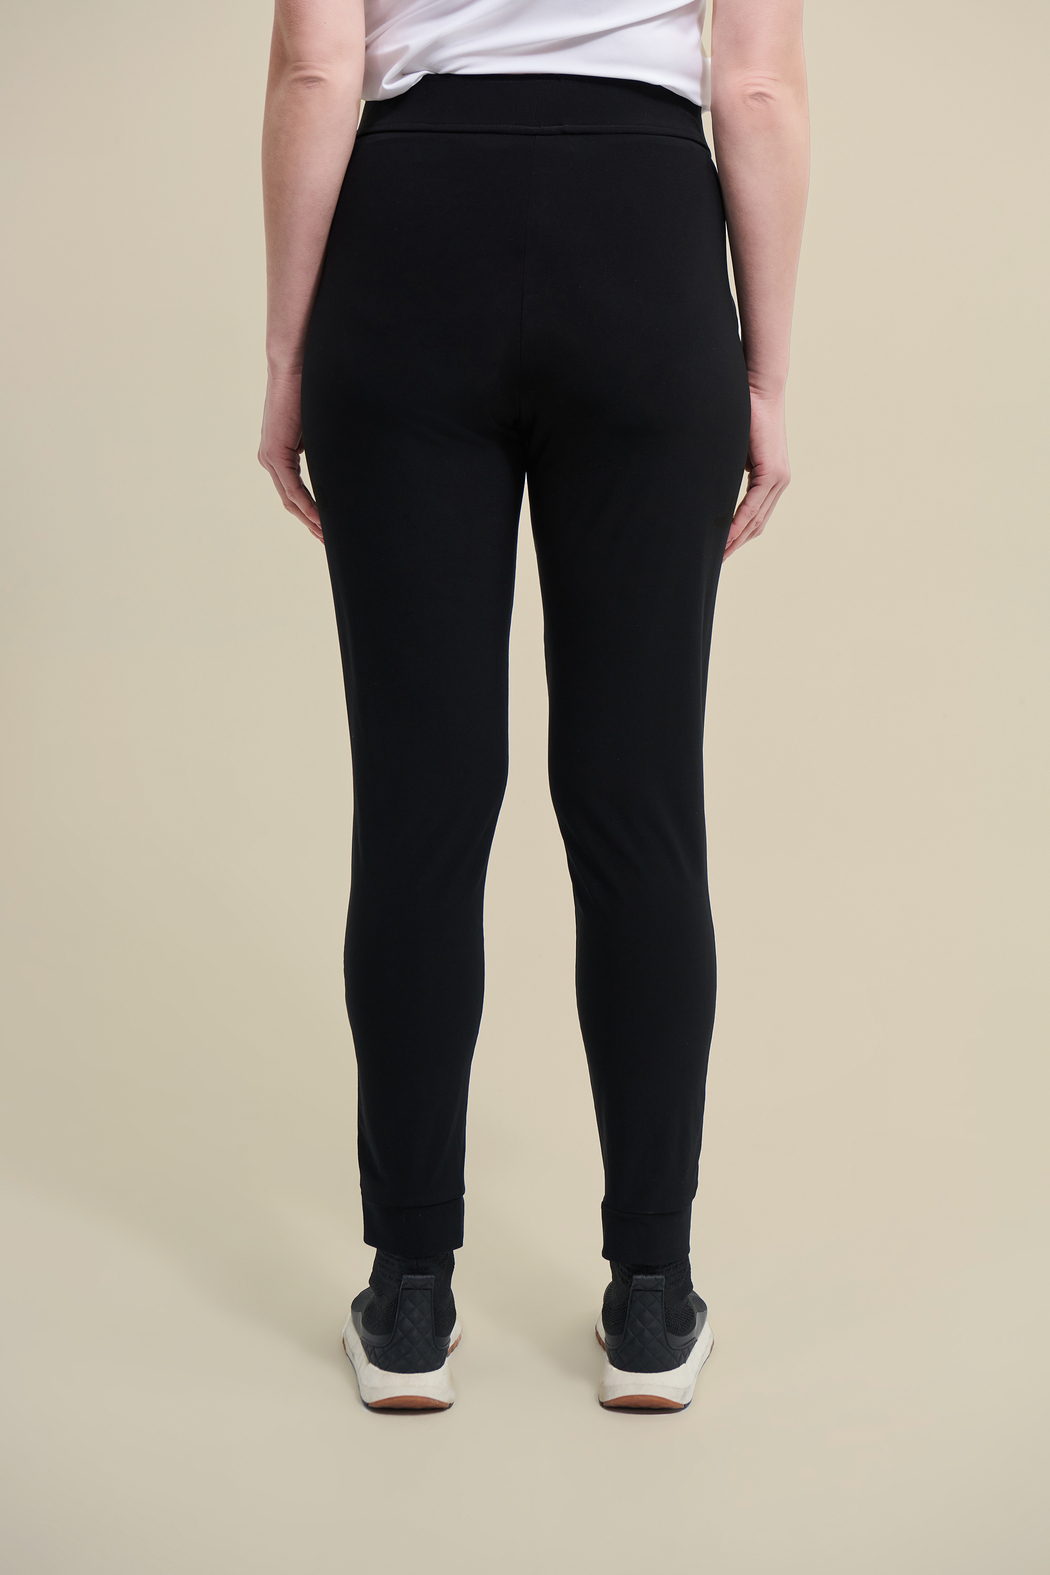 Joseph Ribkoff  Stretchy, black drawstring pants with zip pockets. - Side Cropped Image